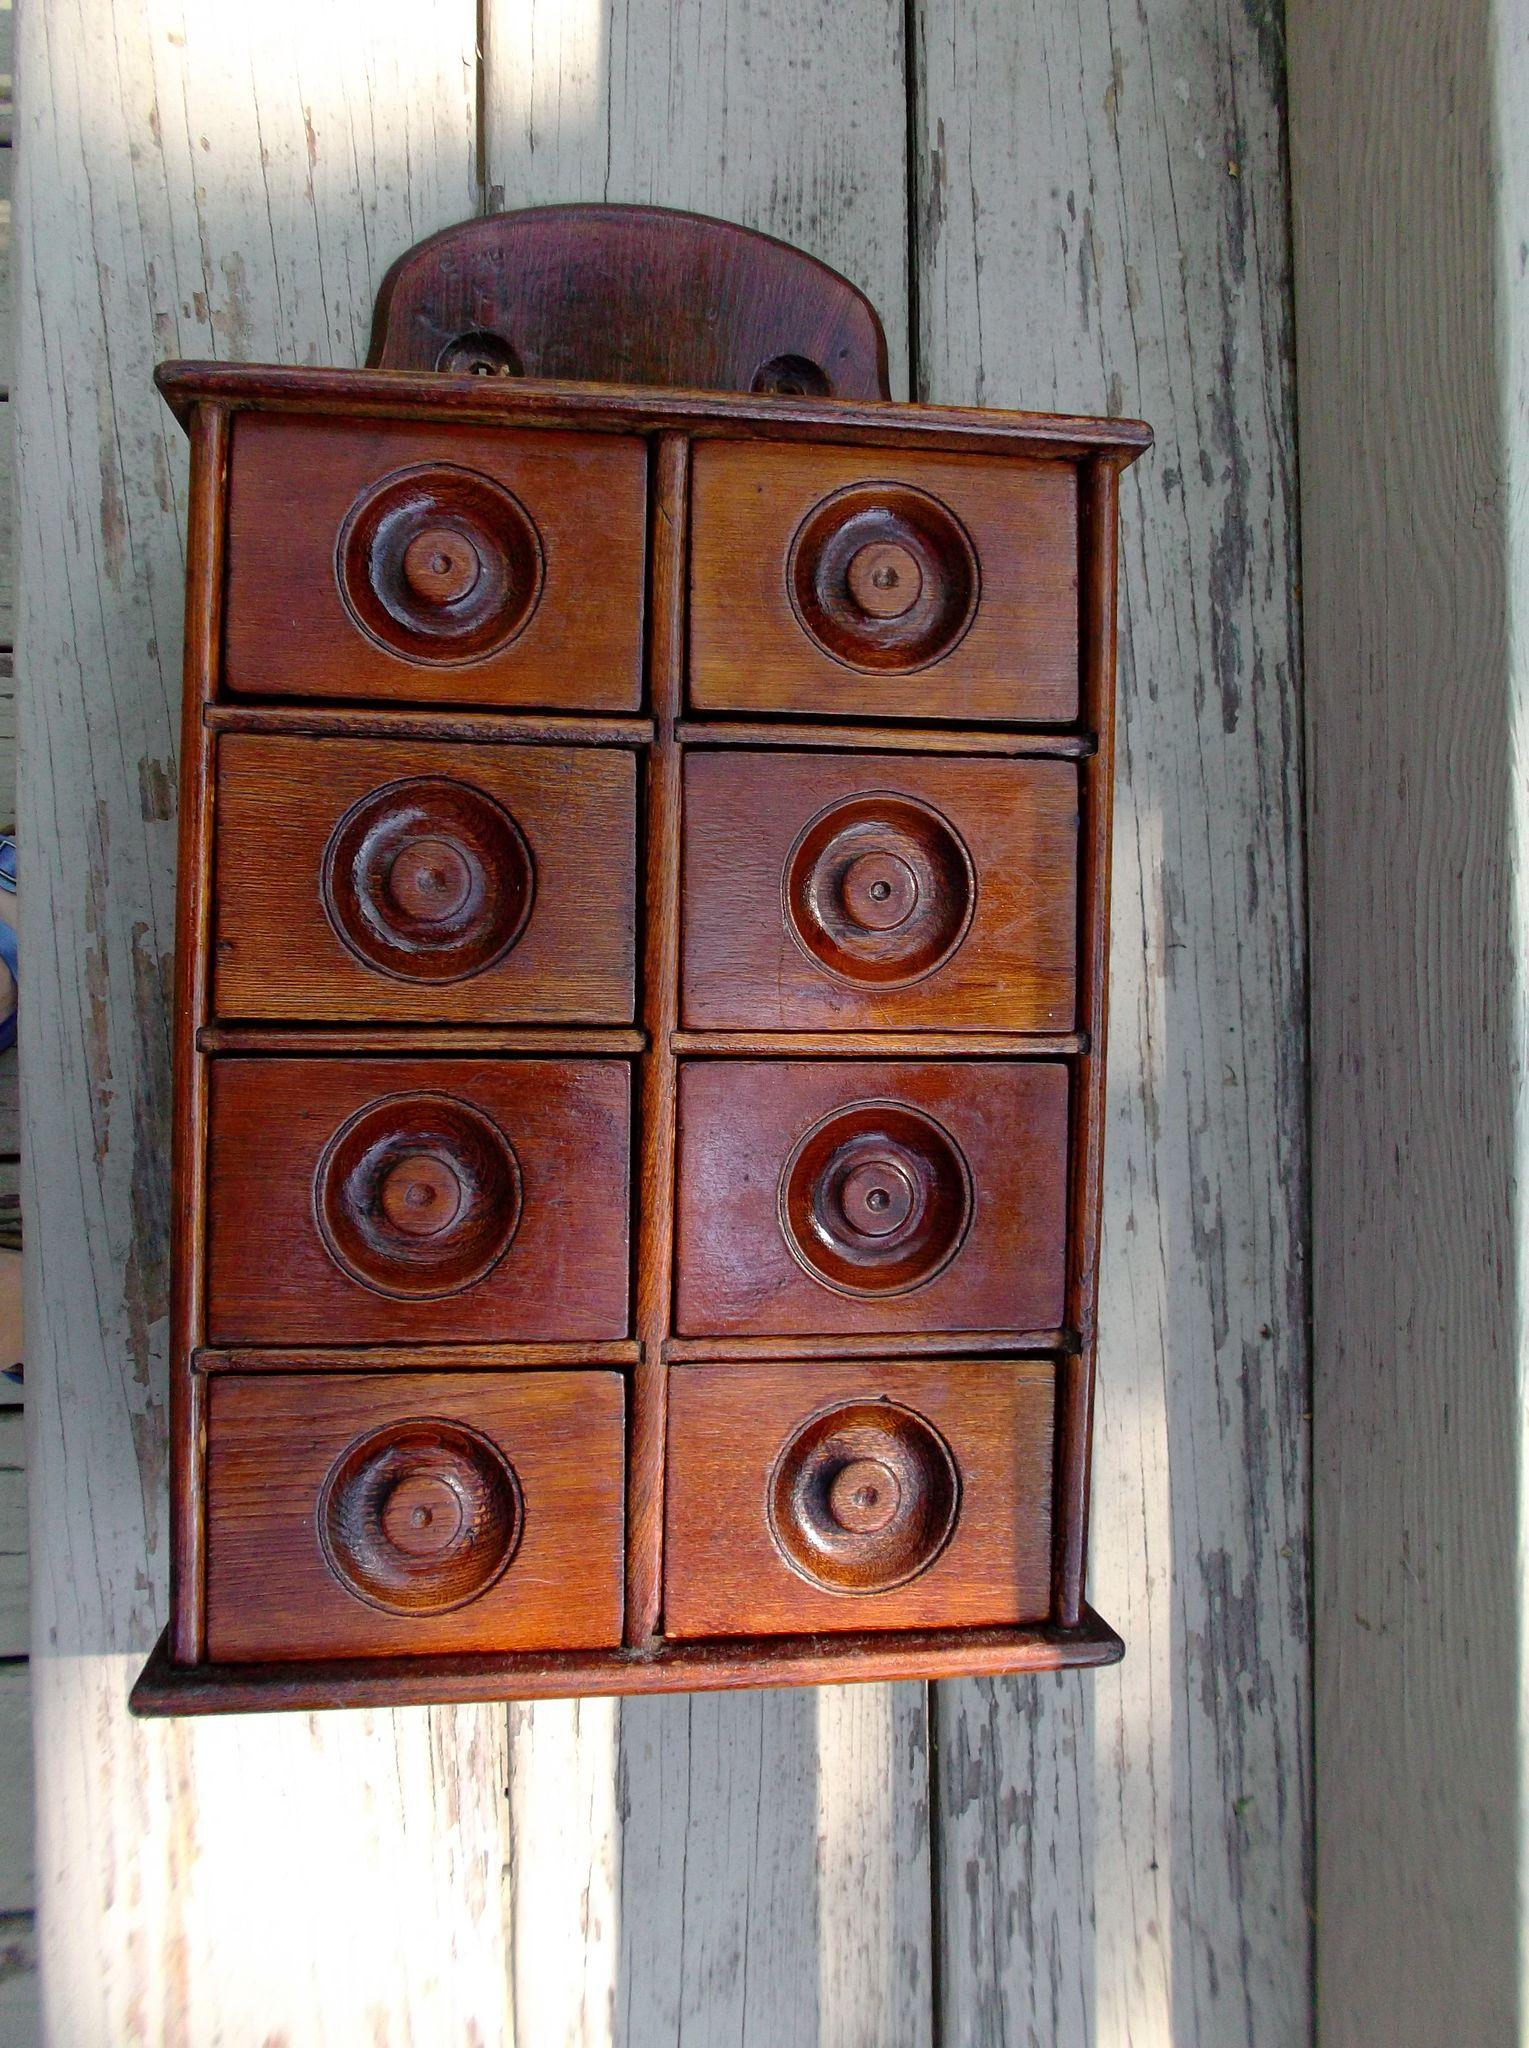 antique wood spice cabinet kitchen home decor from saltymaggie on roll over large image to magnify click large image to zoom